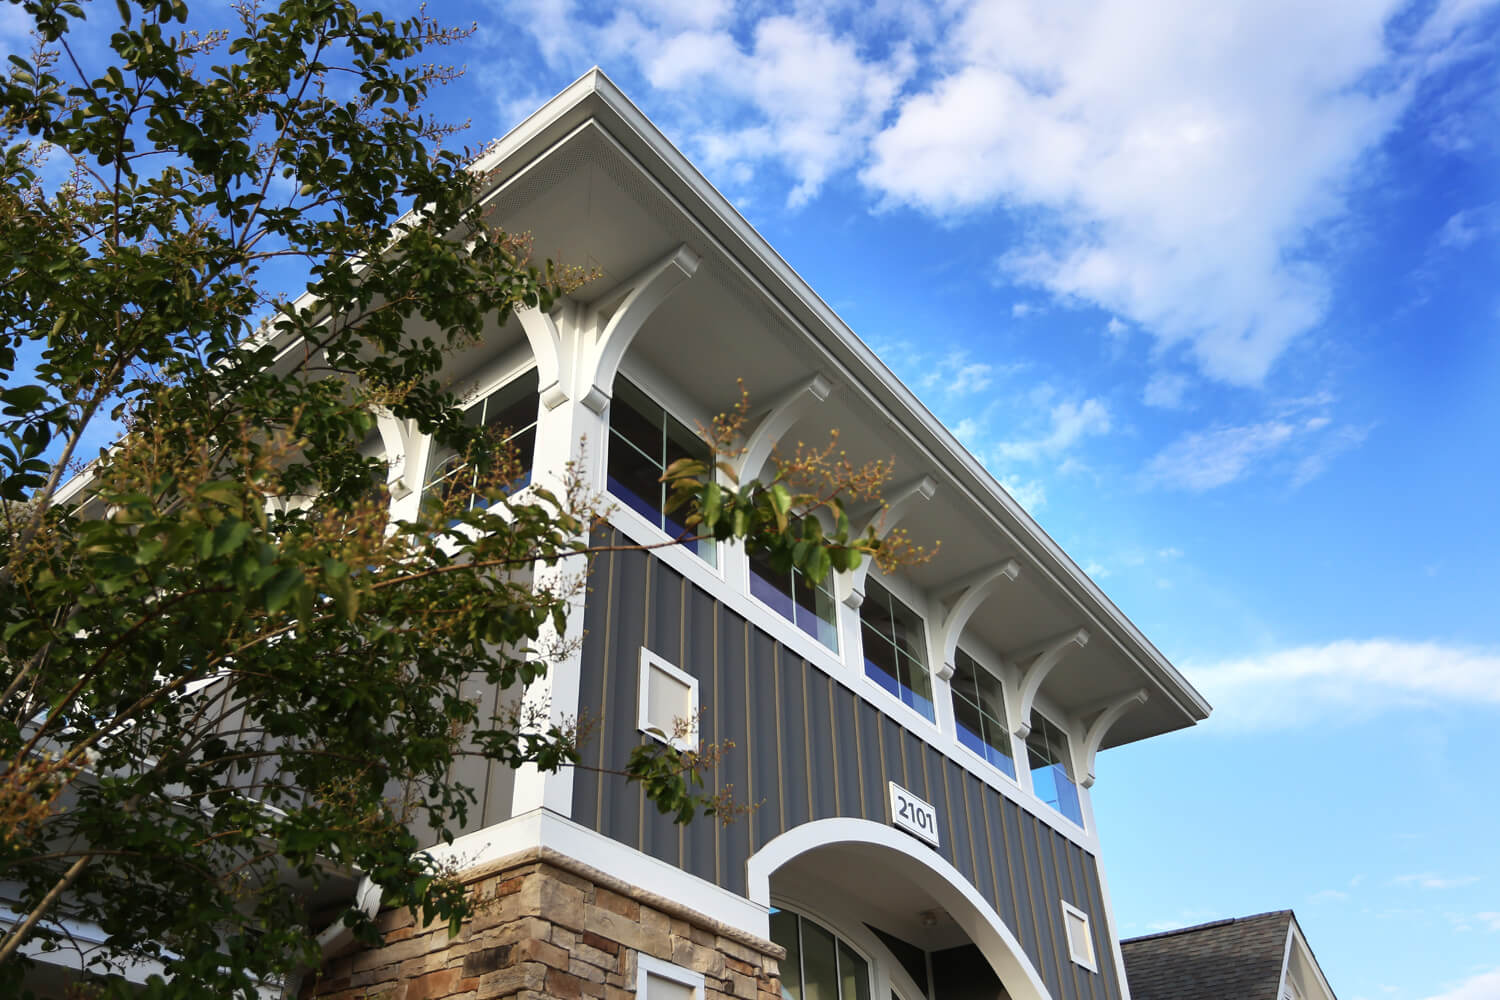 The Morgan Apartments Clubhouse Designed by Foshee Architecture - Exterior View of the Tower